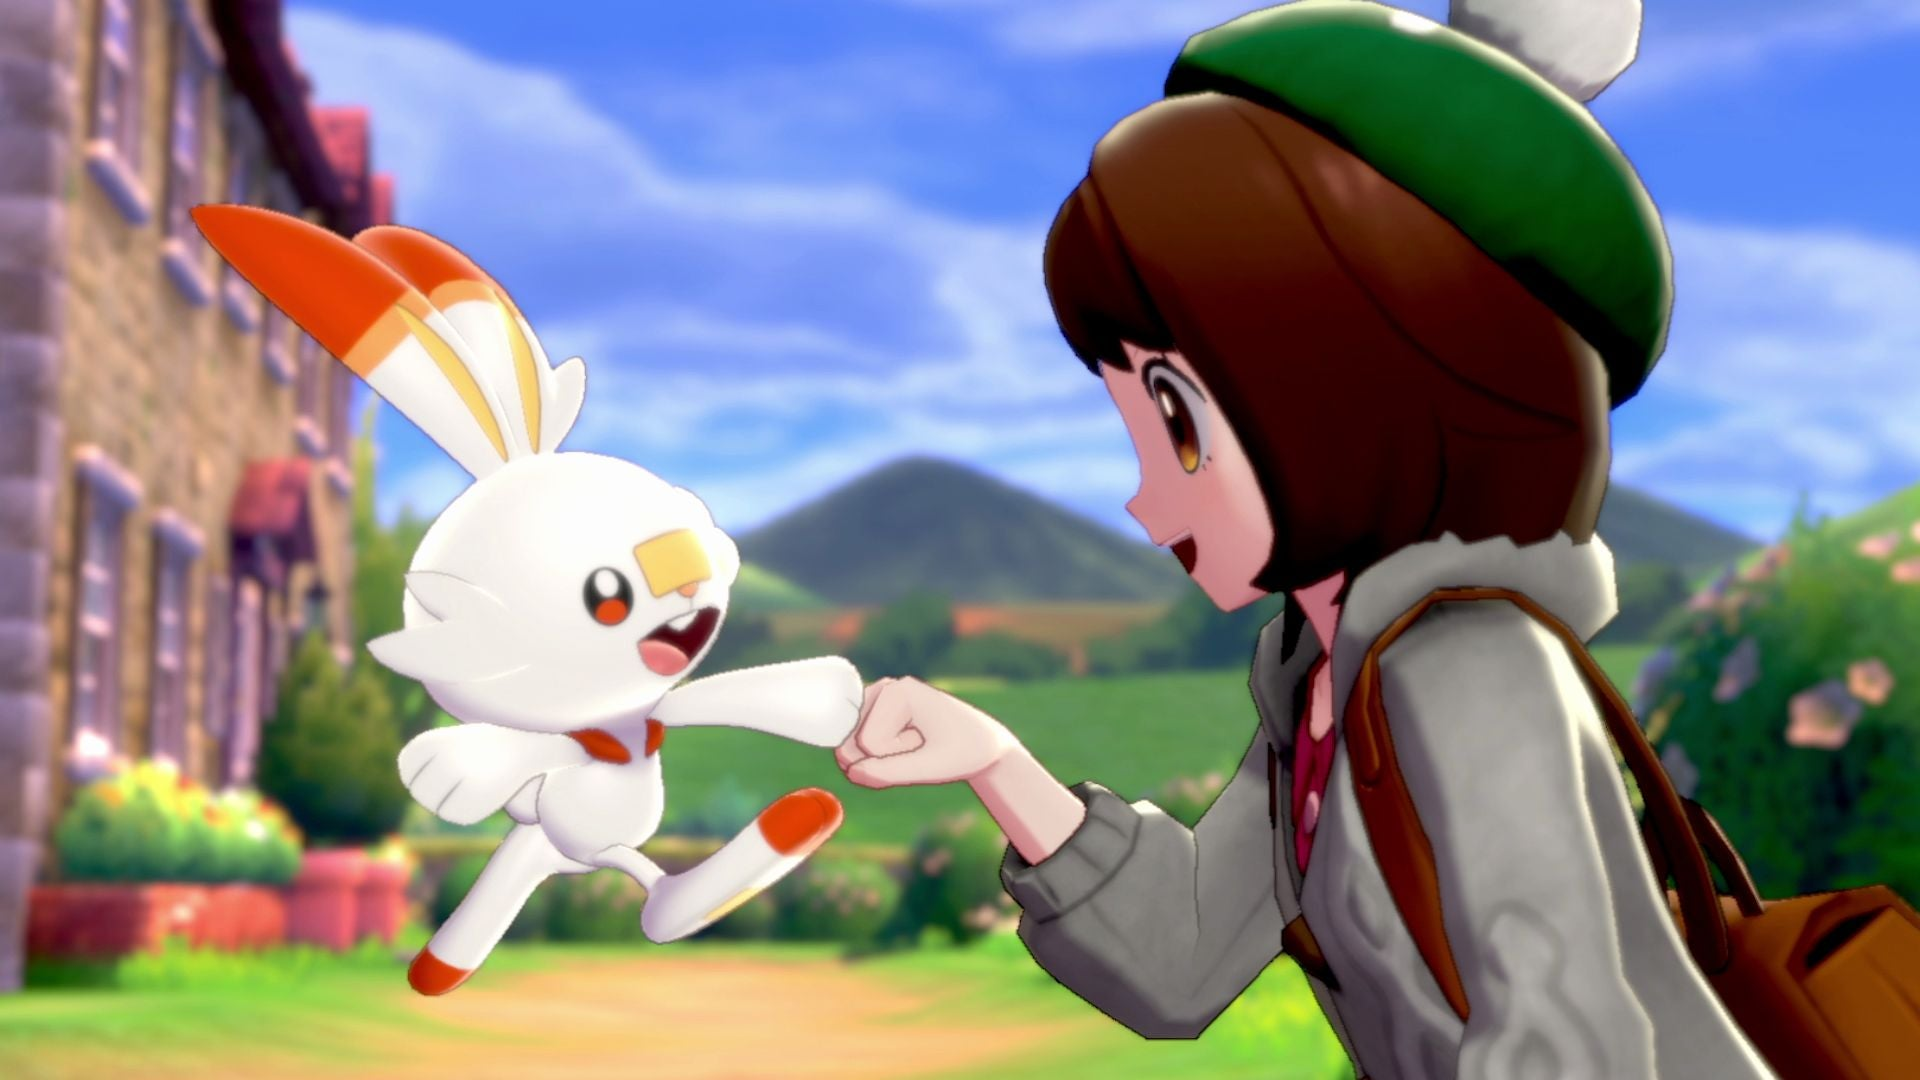 Pokémon Sword And Shield Director Says It's About 'Growing And Evolving' -- For The Trainer, Too